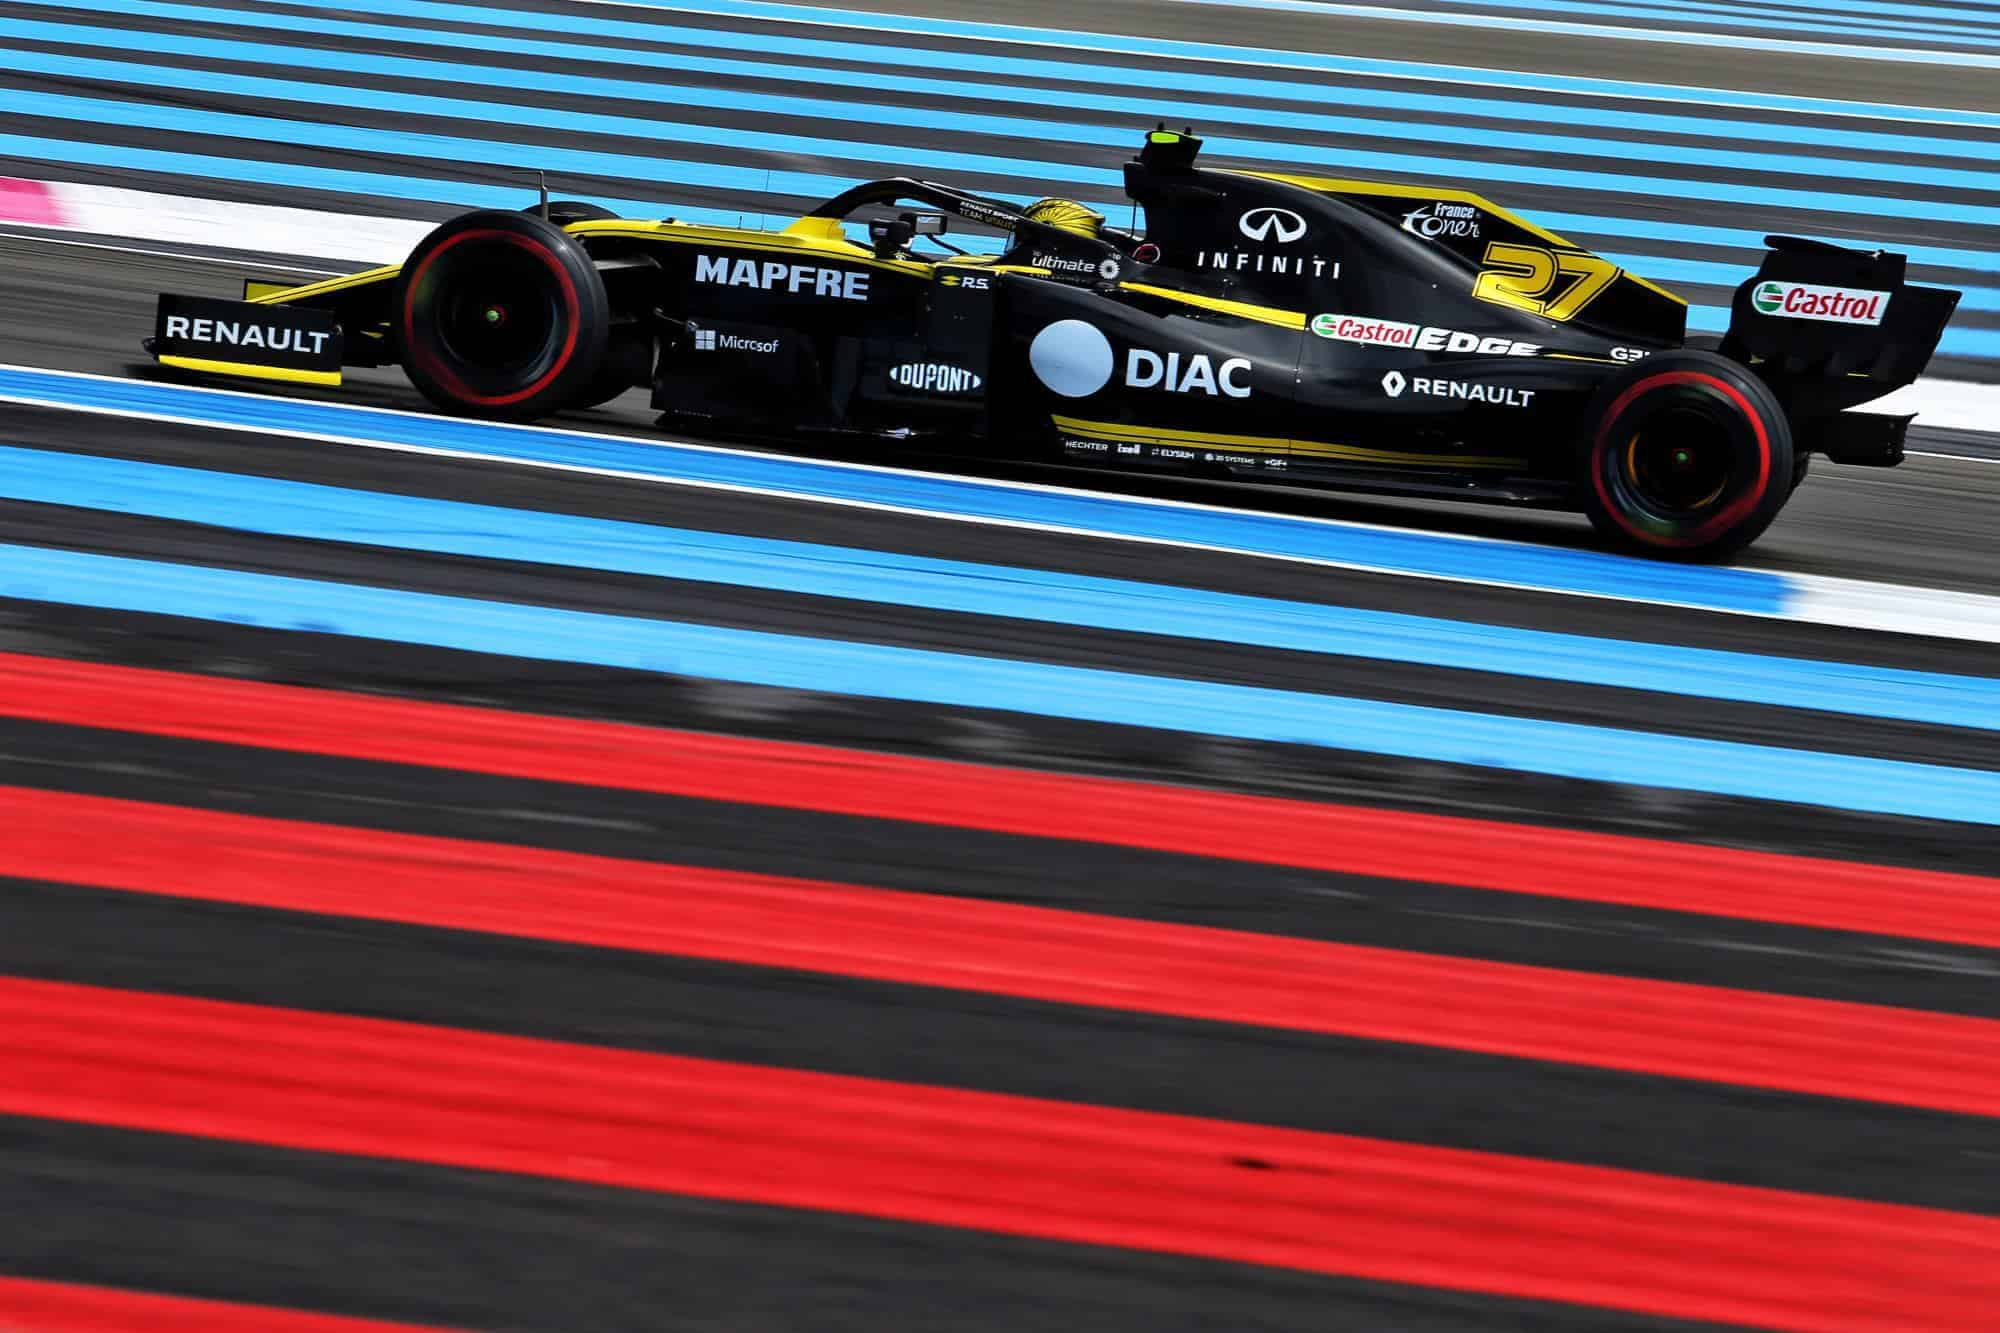 2019 French GP – Qualifying and race top speeds and best